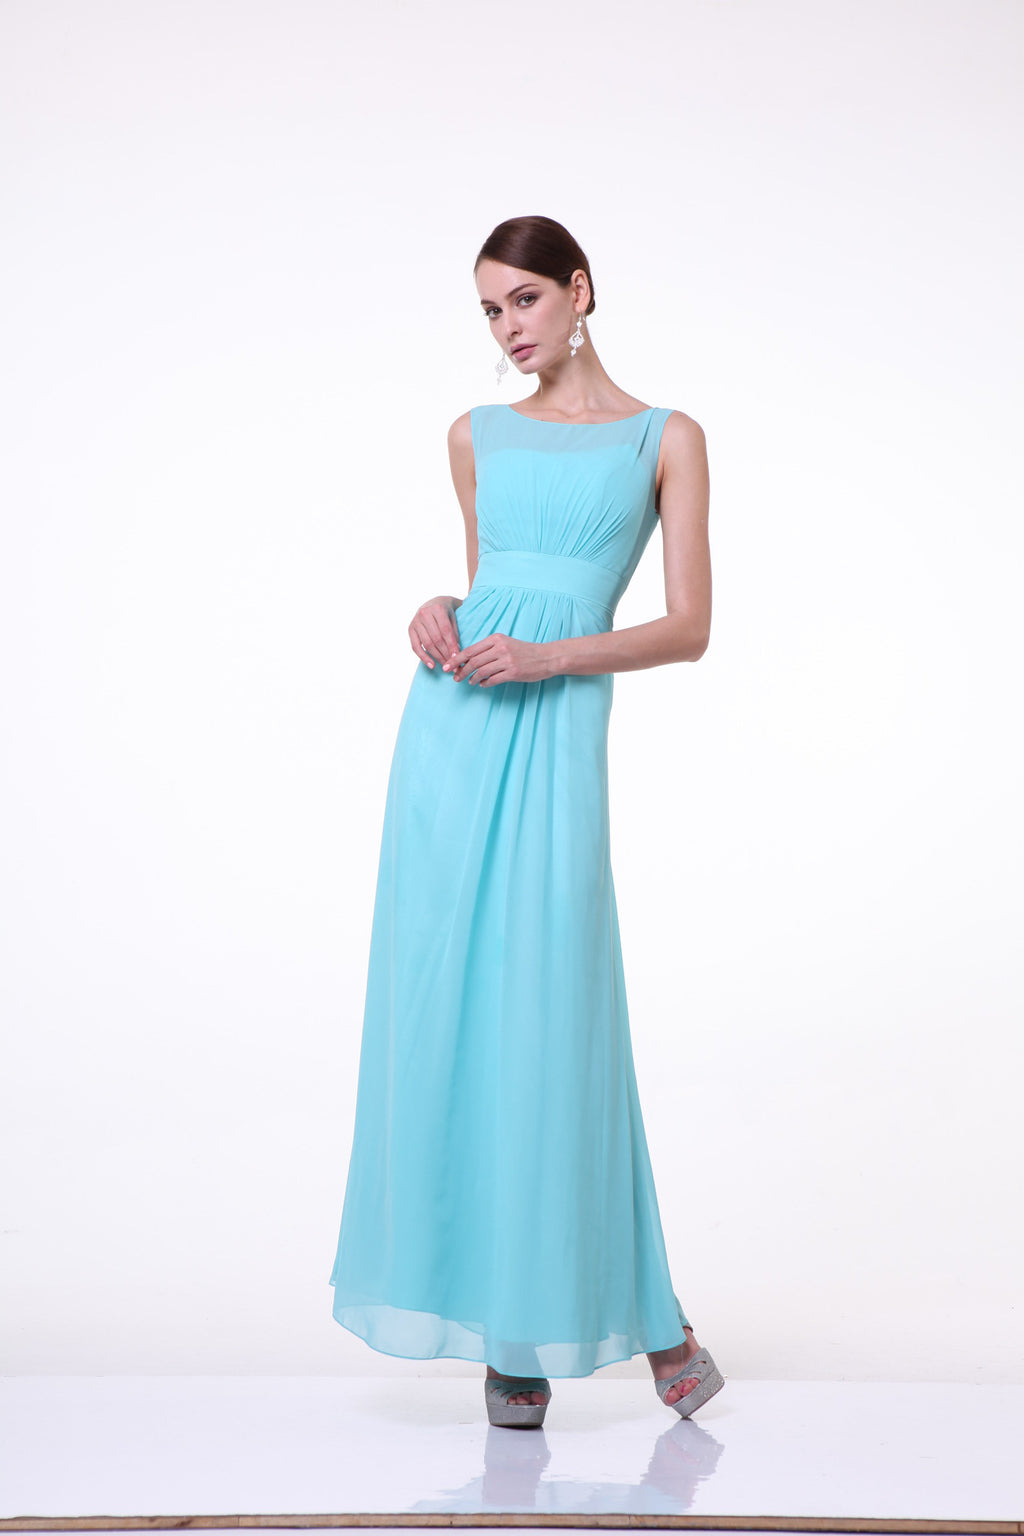 LONG DRESS STYLE #C1465 - NORMA REED - 1